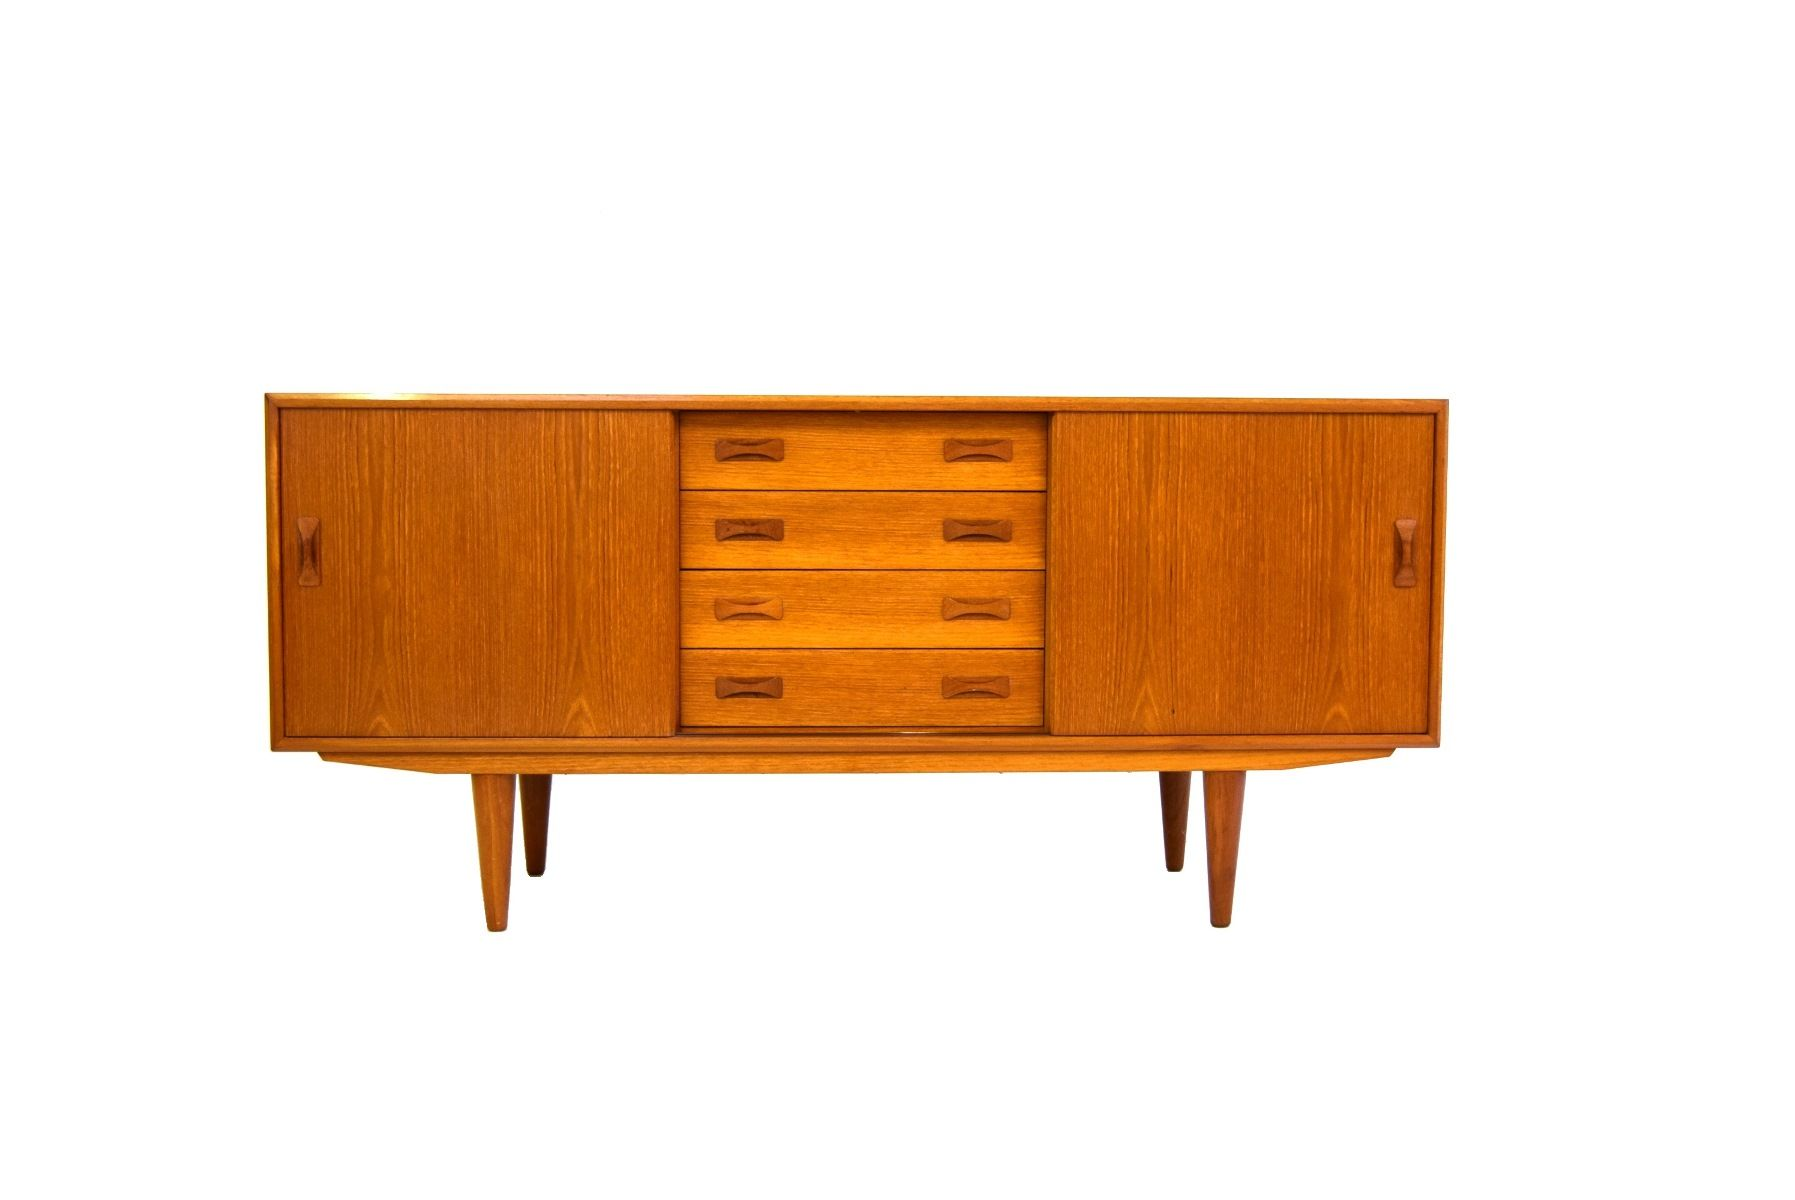 Mid century sideboard from clausen s n 1960s for sale - Sideboard mid century ...